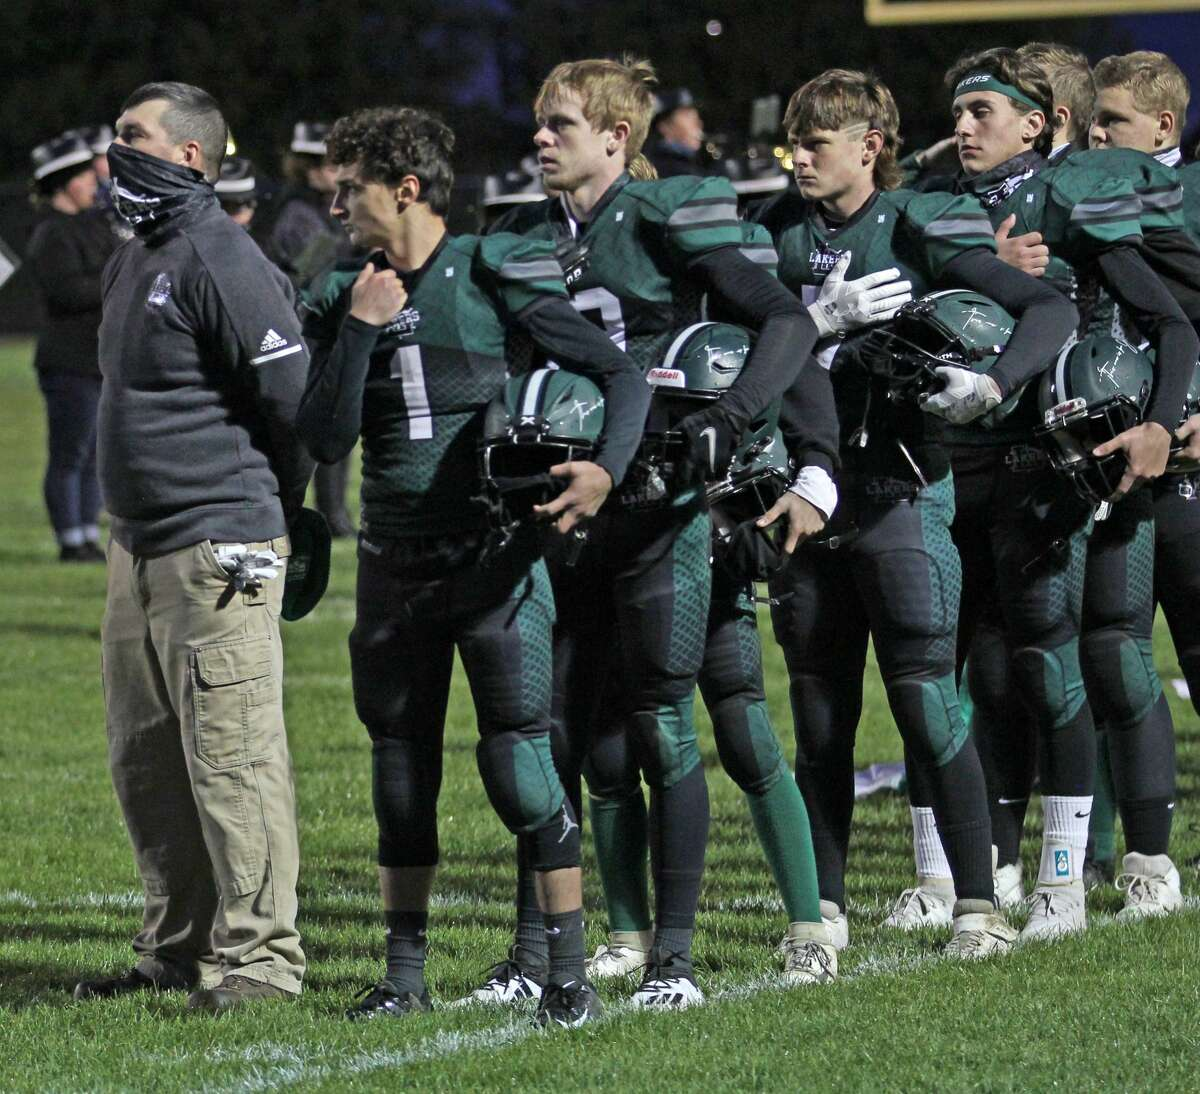 Laker High School is in search of a new head coach for its varsity football team.